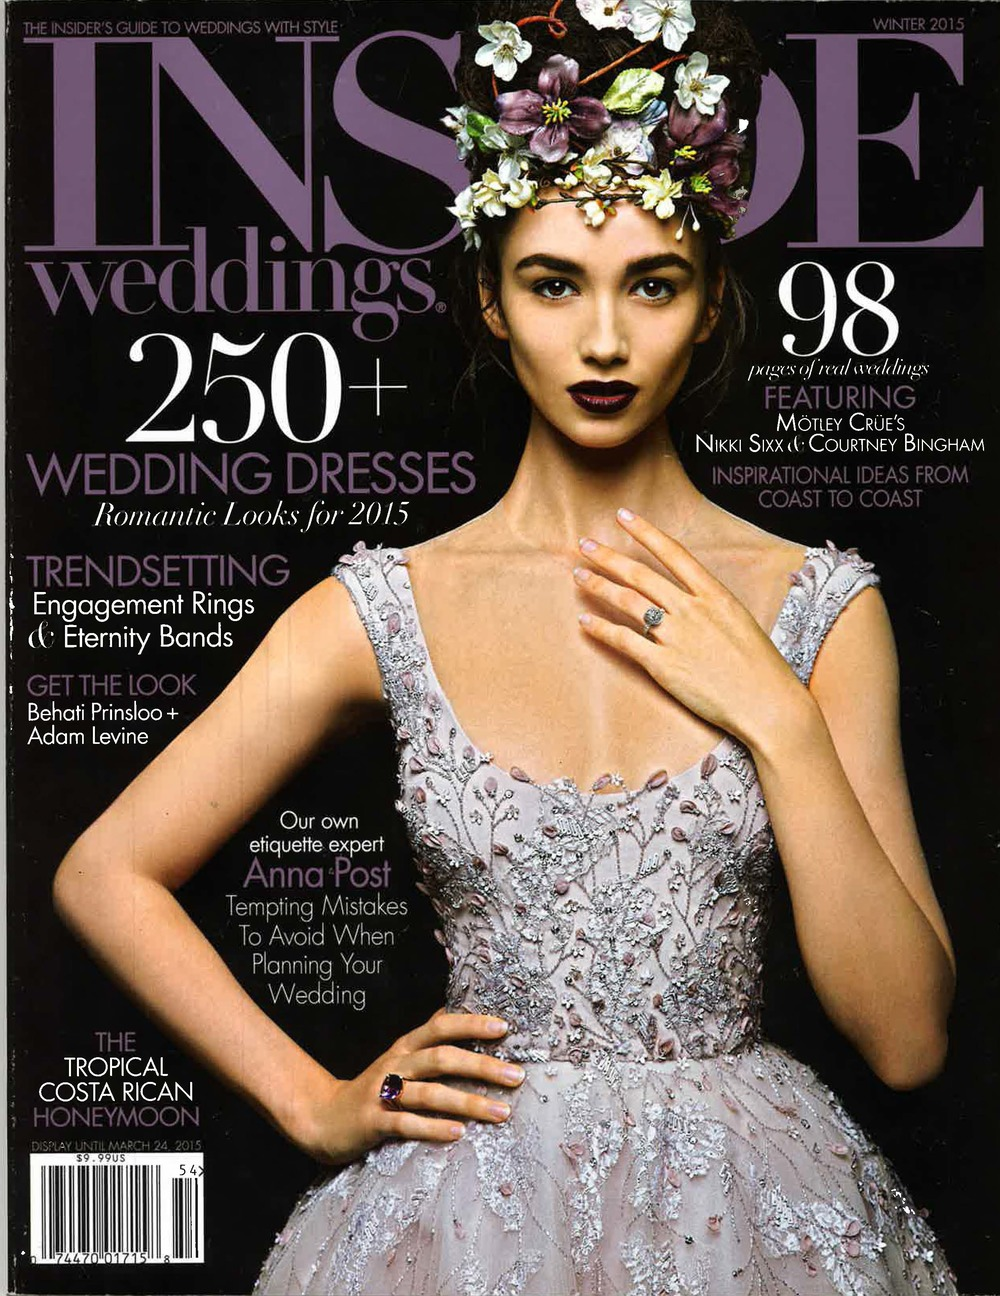 Inside Weddings_Cover_Winter 2015.jpg